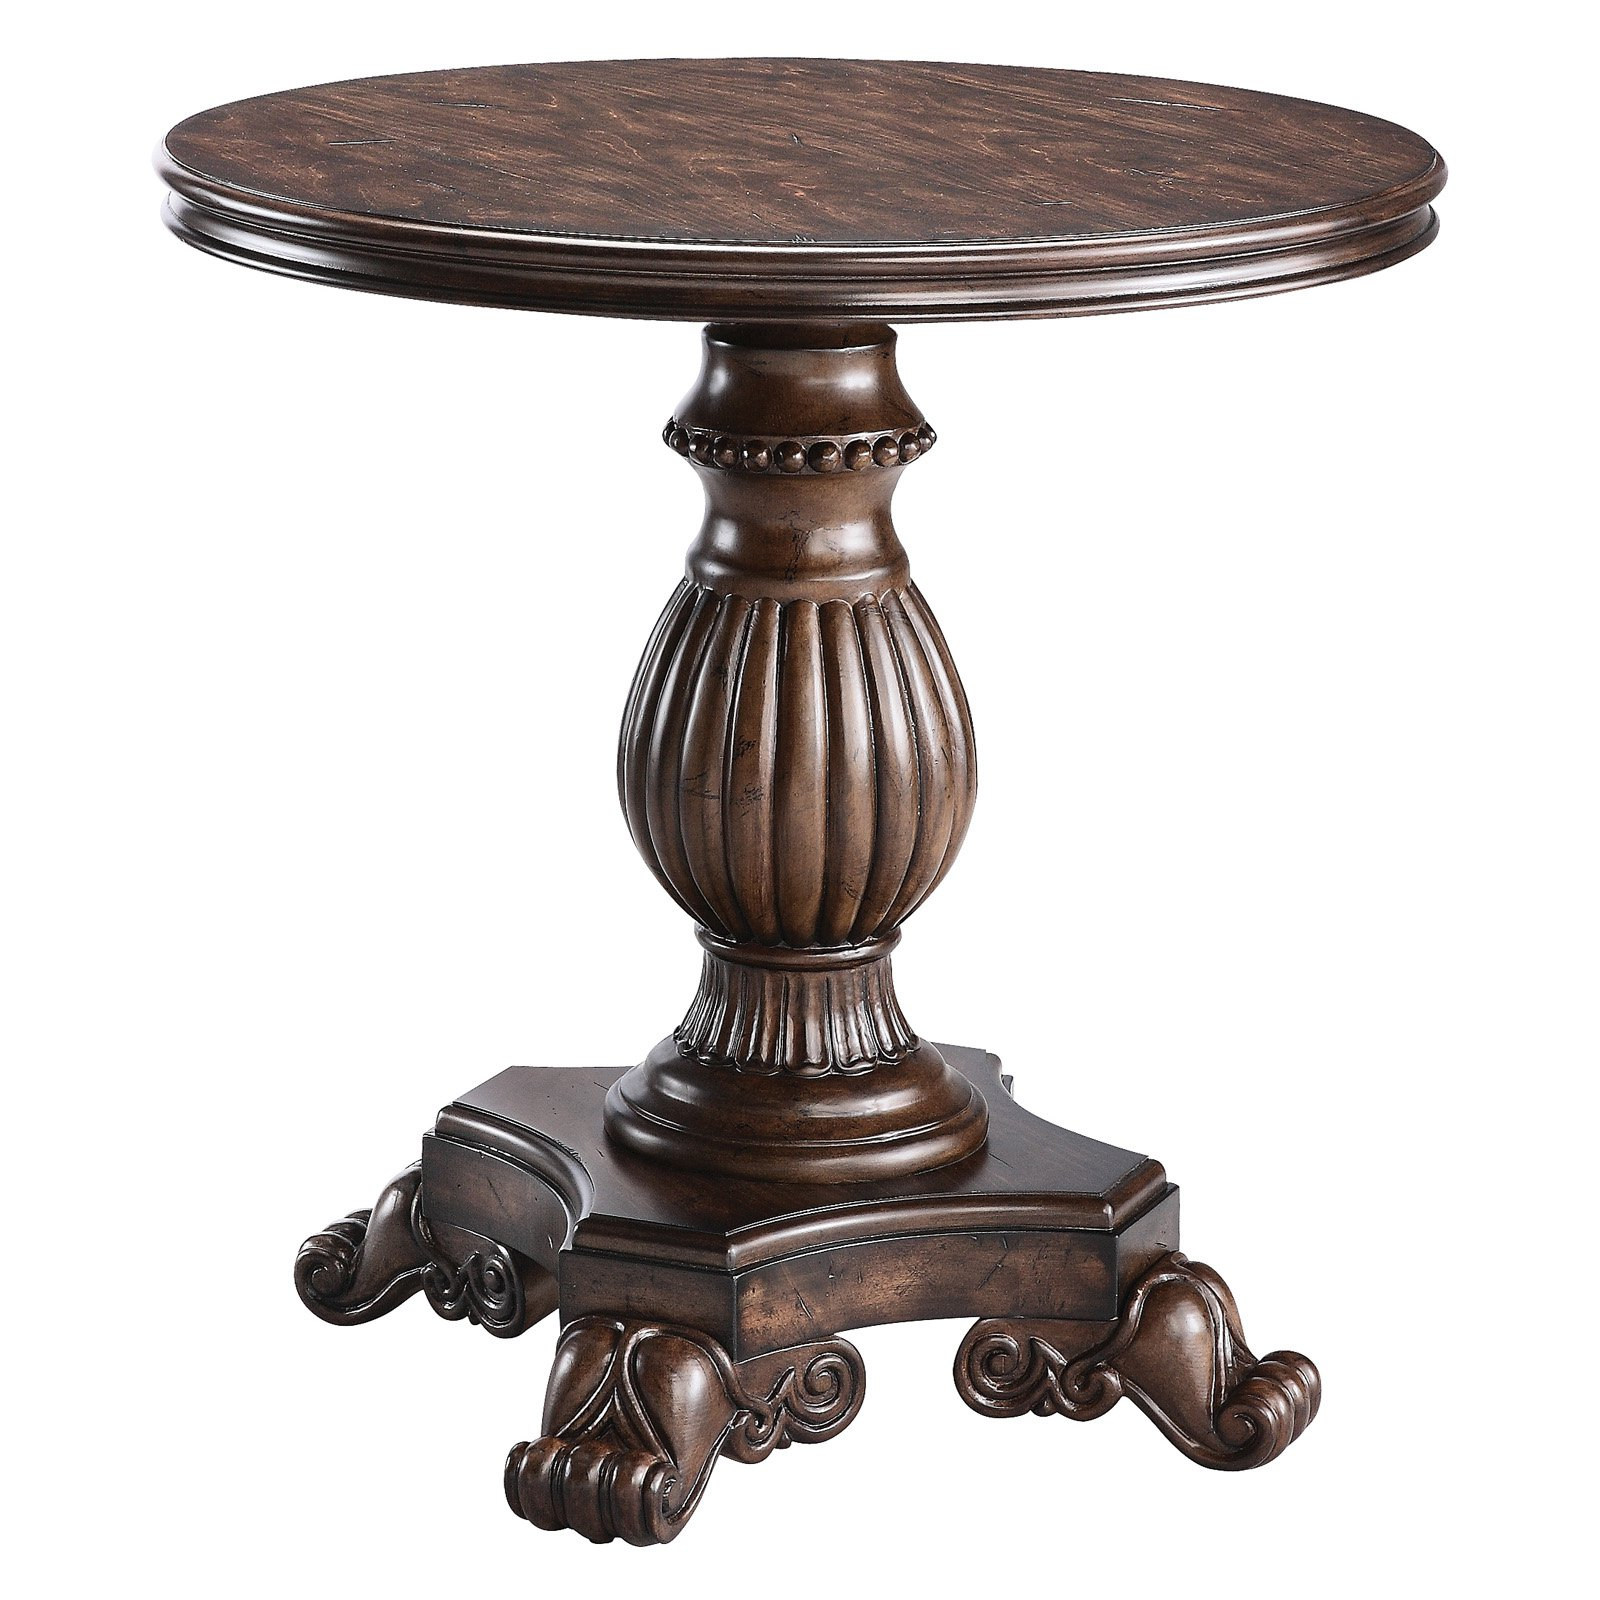 stein world round pedestal reclaimed table dark end half moon accent simplify small metal tray rustic farm tables target silverware set nesting with drawer rattan garden furniture